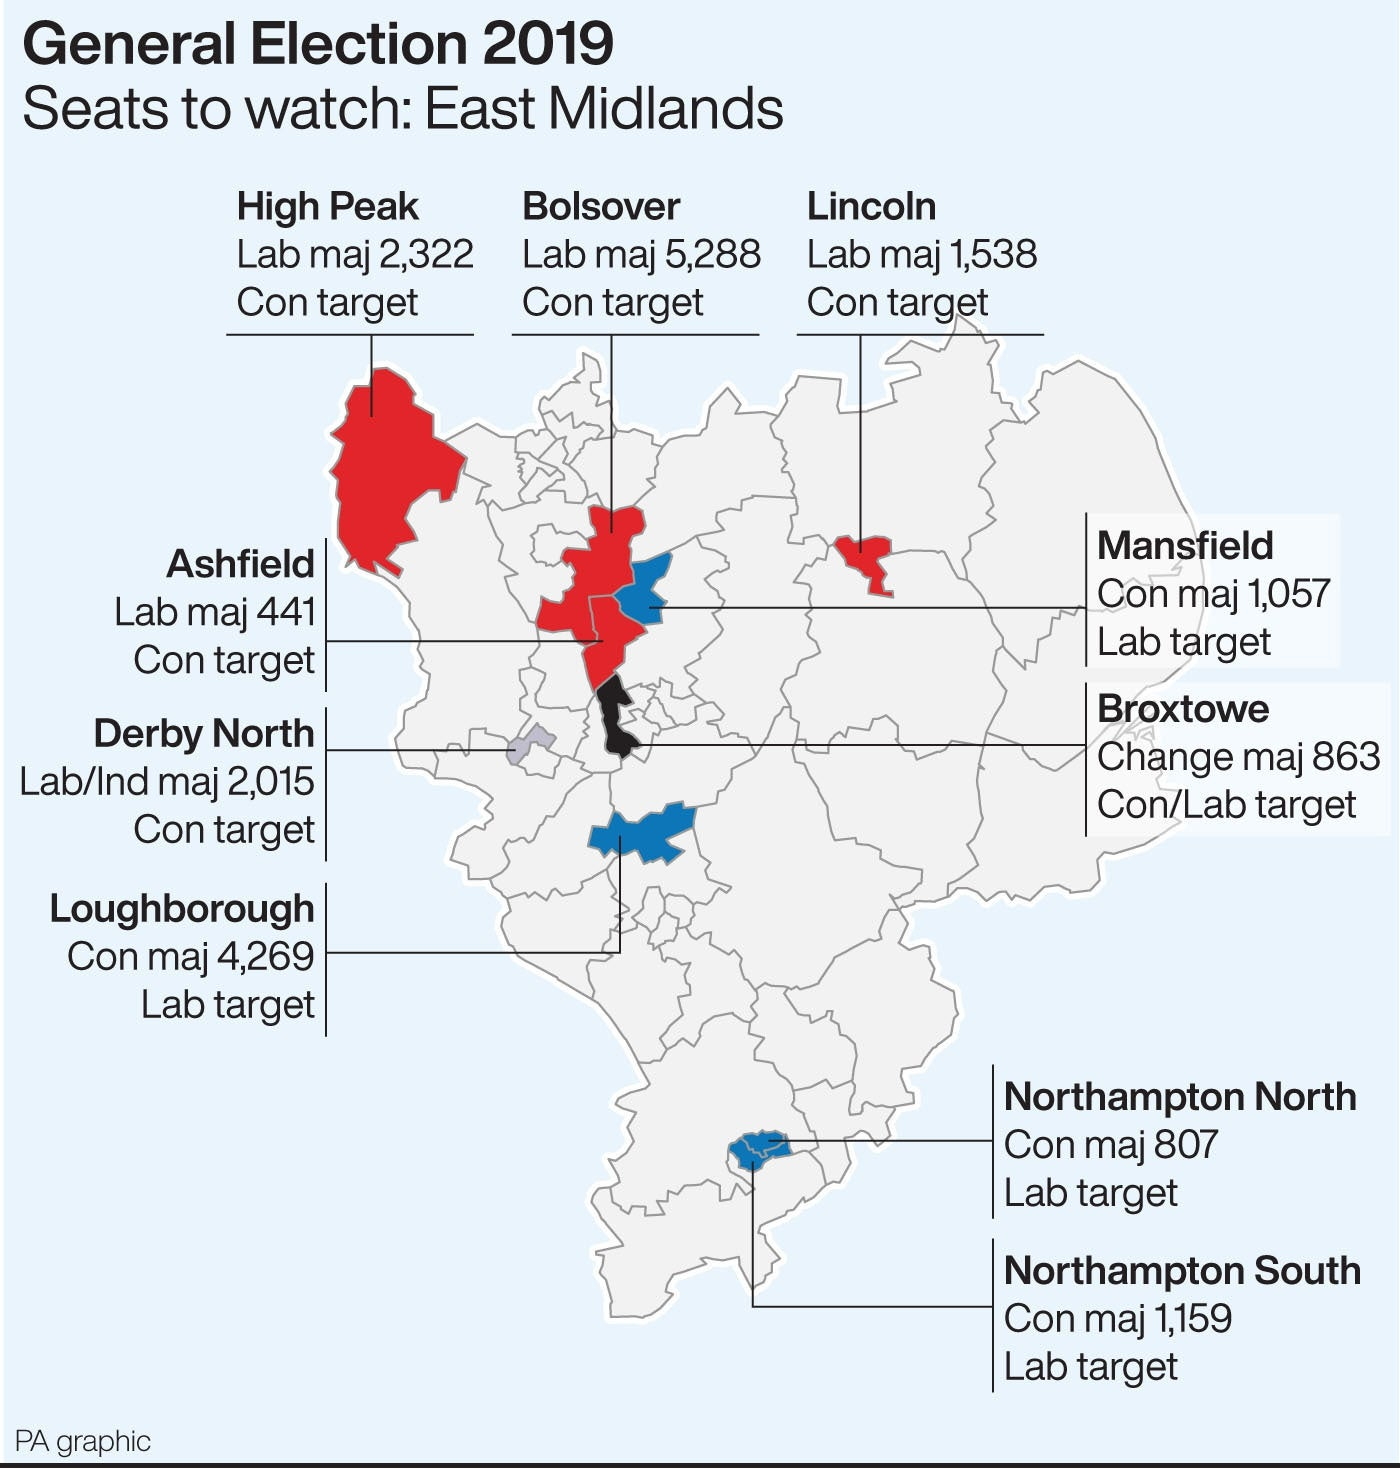 Seats to watch in the East Midlands